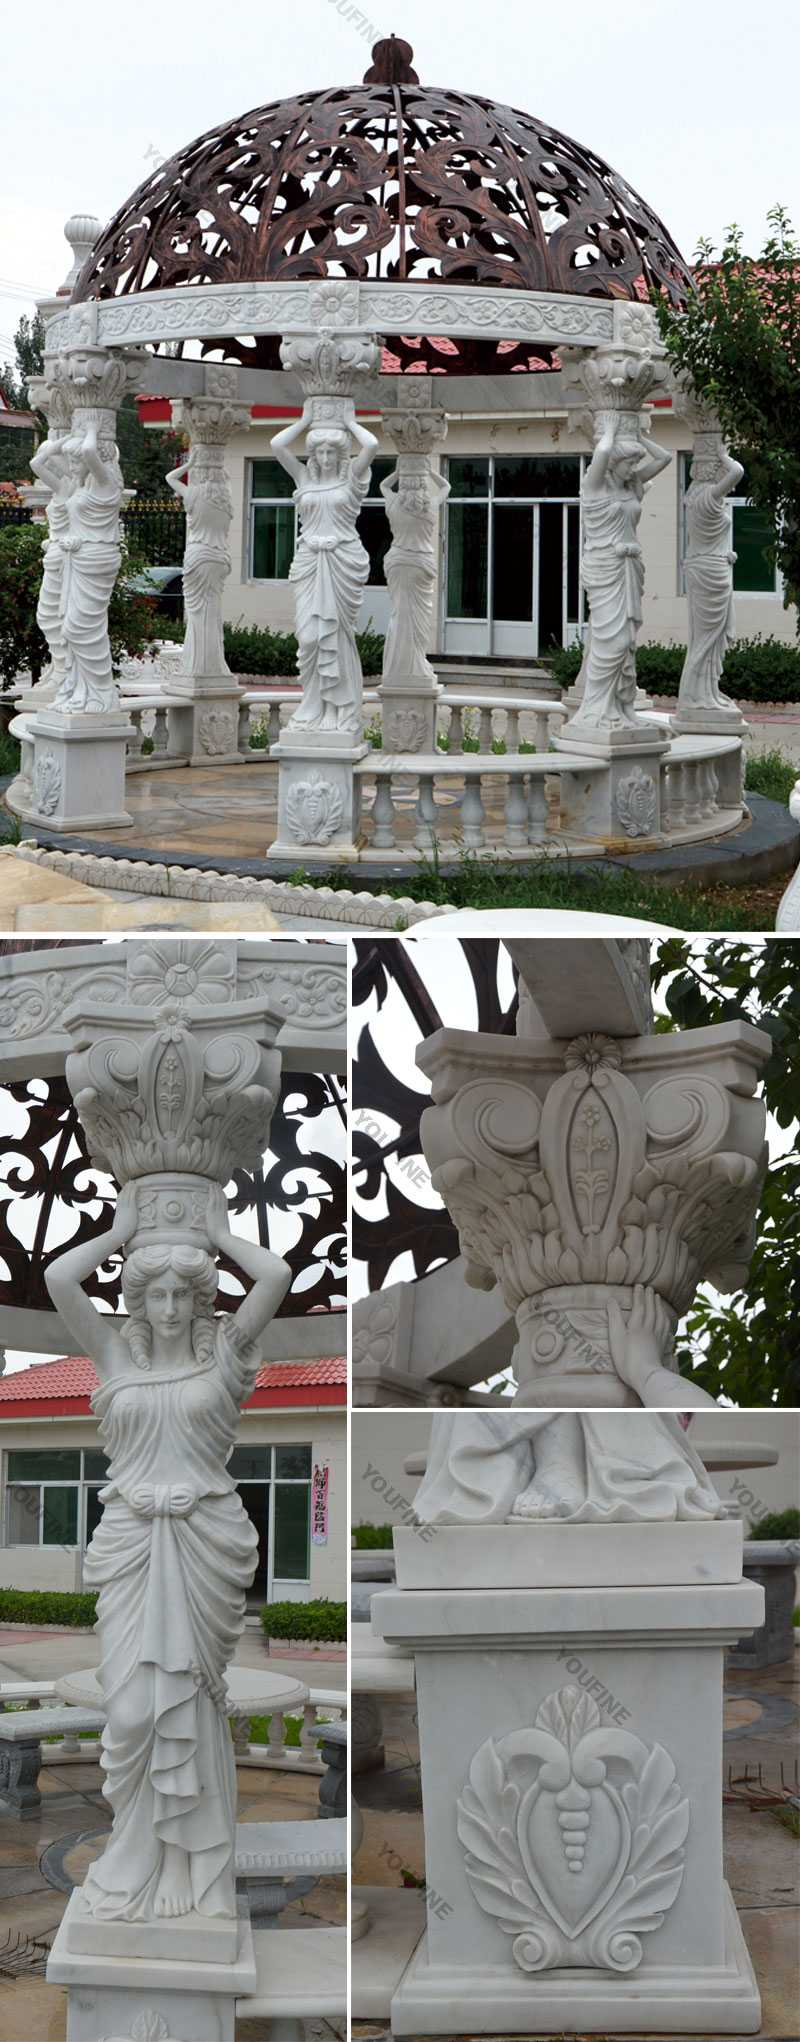 High quality outdoor white marble pergola with maidens gazebo designs for yard decor